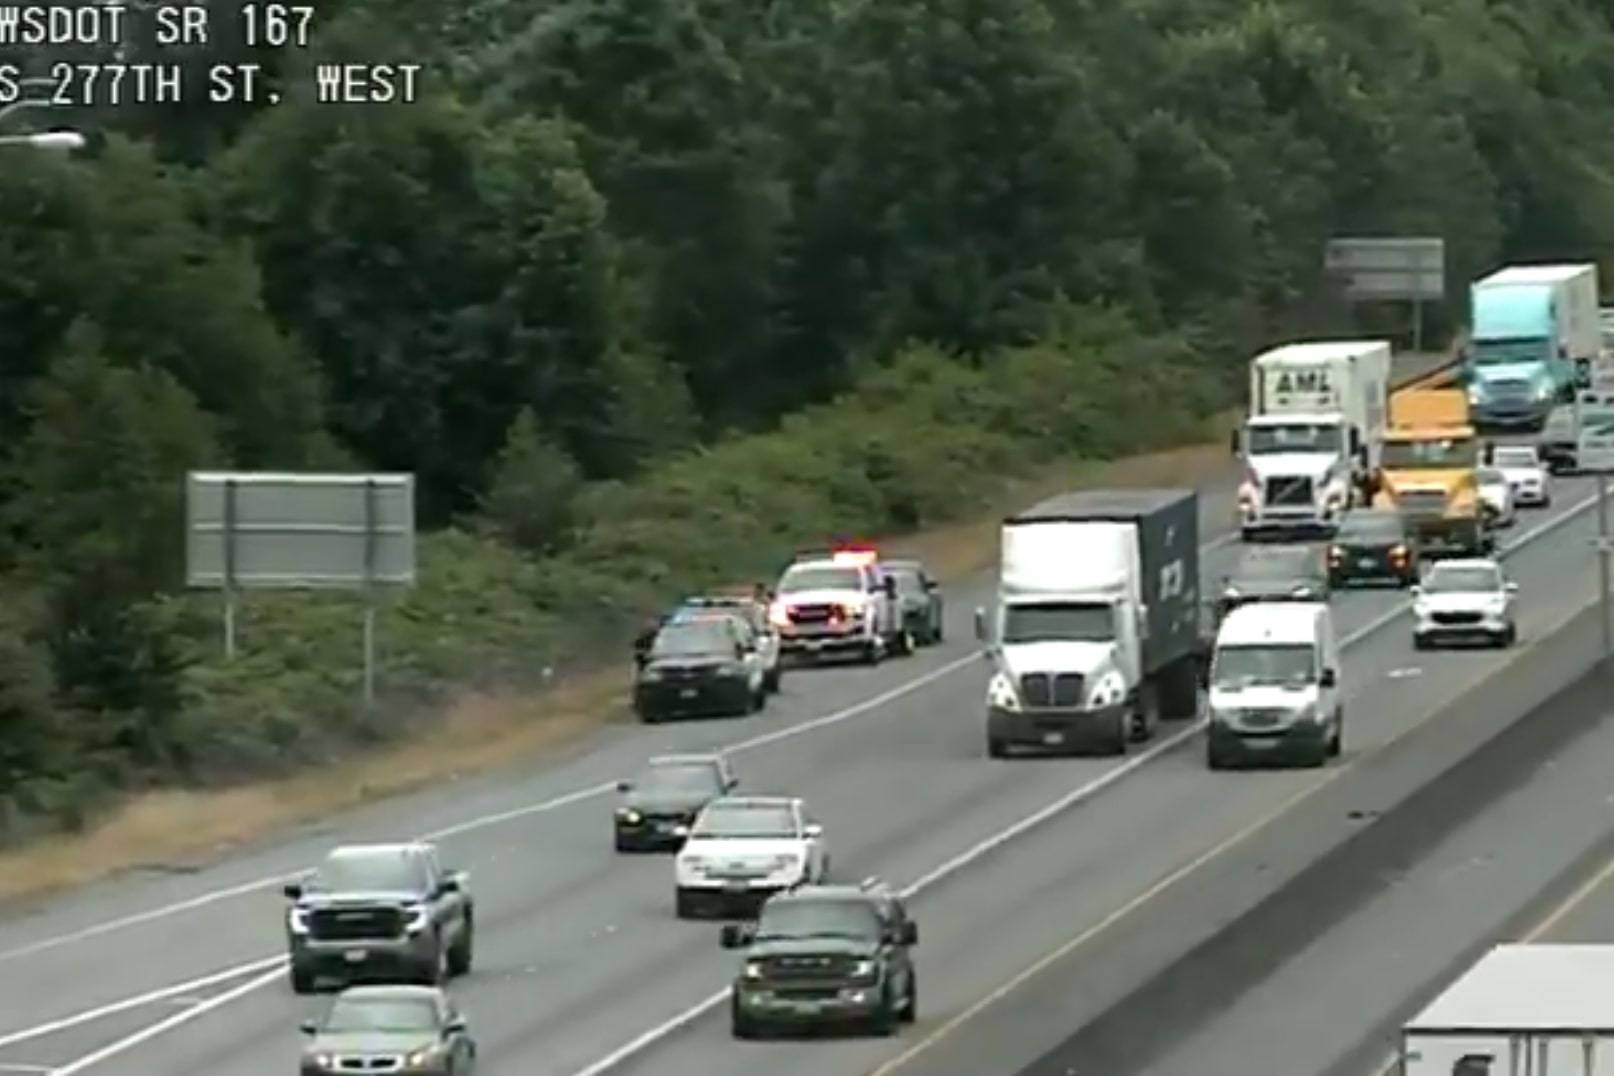 In a Twitter post by WSDOT about 10:30 a.m. Wed., July 7: A vehicle is seen on the shoulder after previously blocking the right lane on northbound SR 167 at South 277th St.